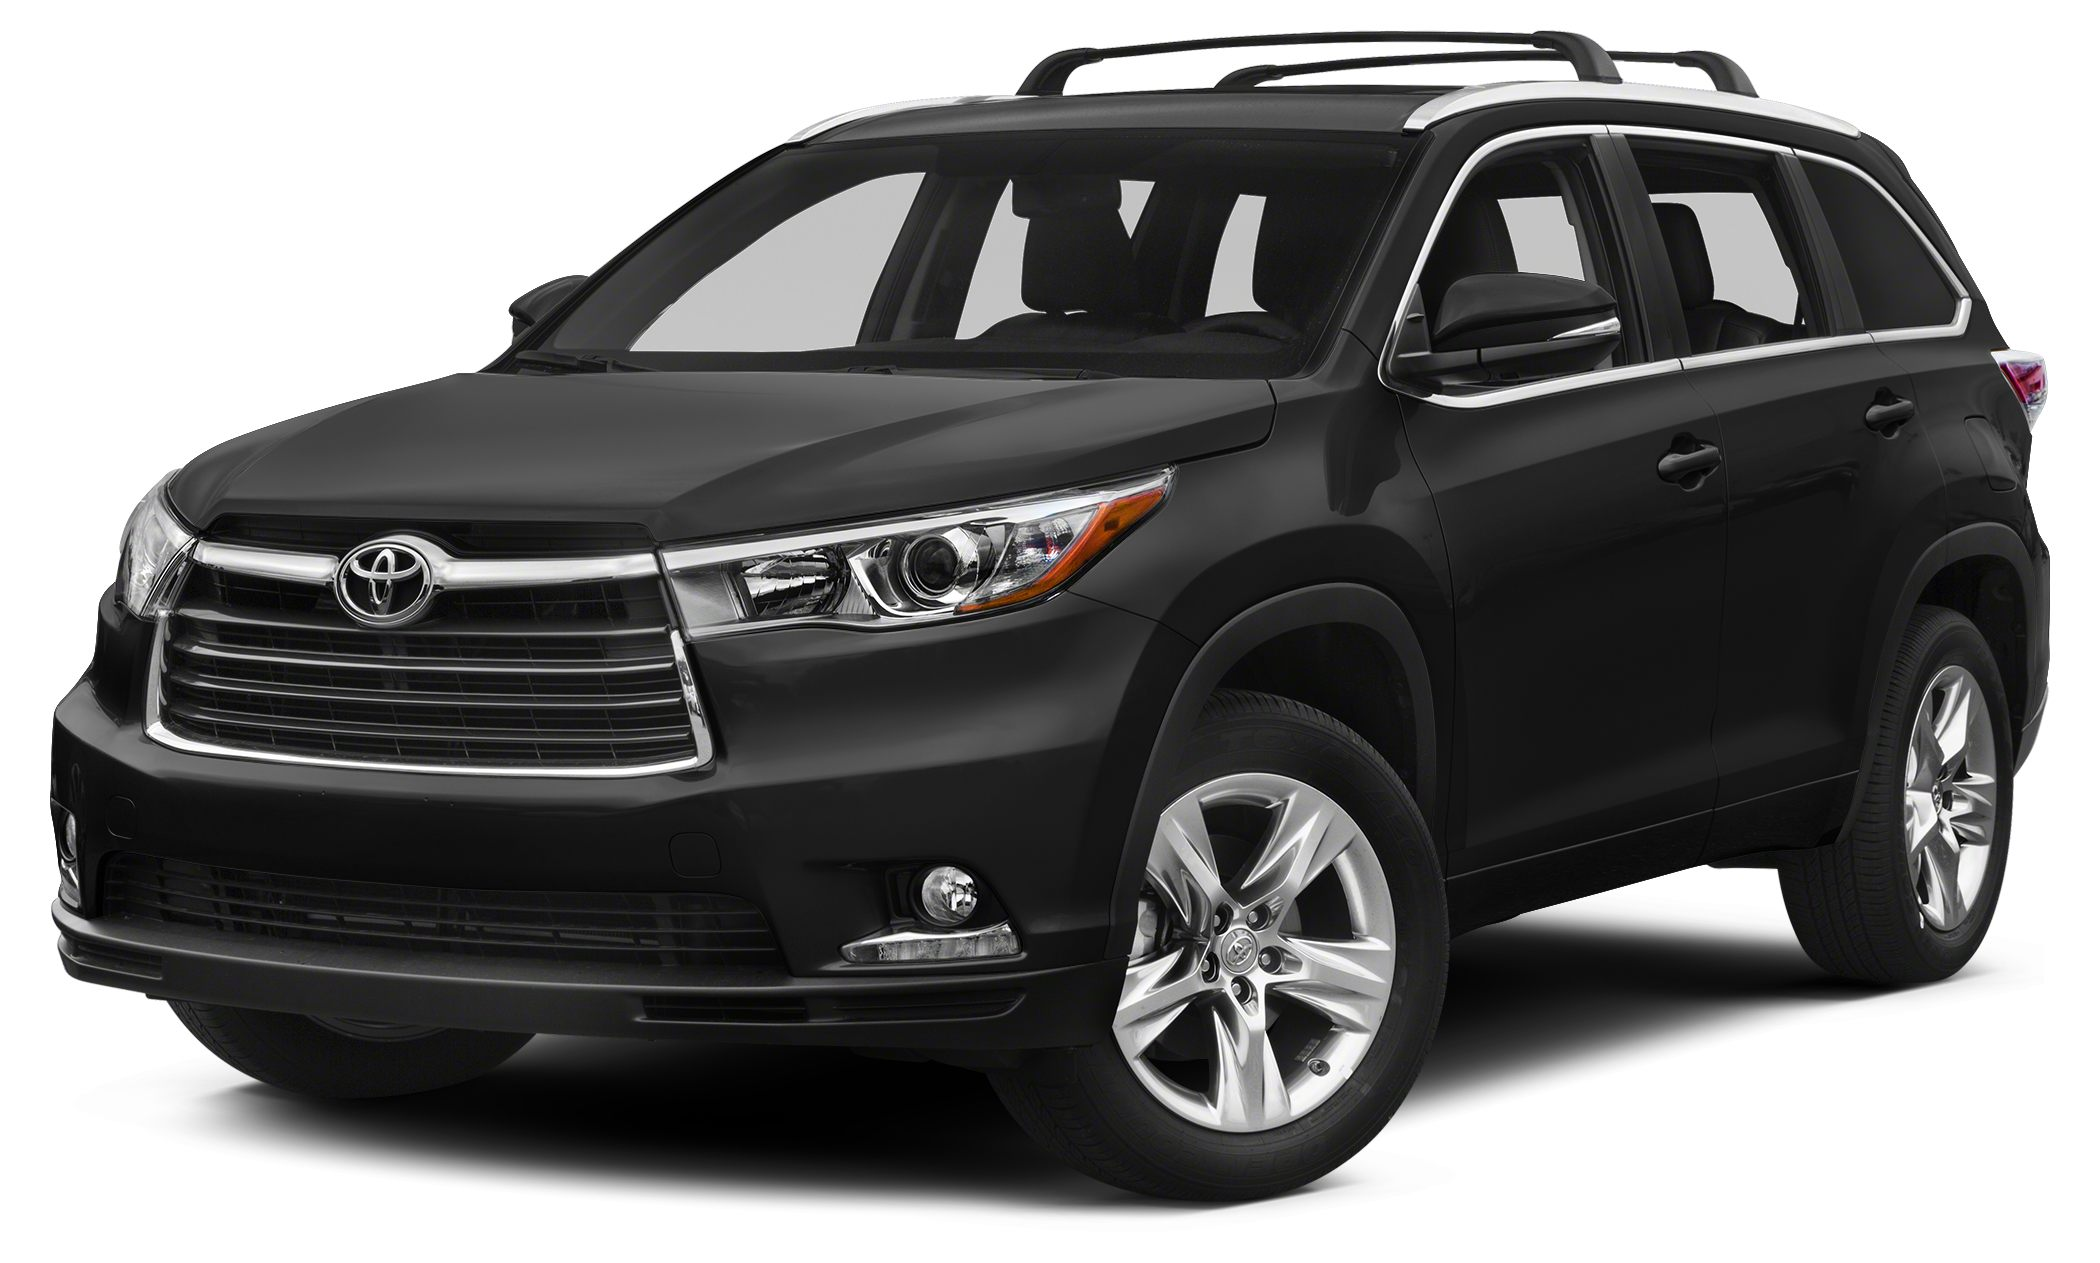 2014 Toyota Highlander XLE FUEL EFFICIENT 24 MPG Hwy18 MPG City CARFAX 1-Owner LOW MILES - 350